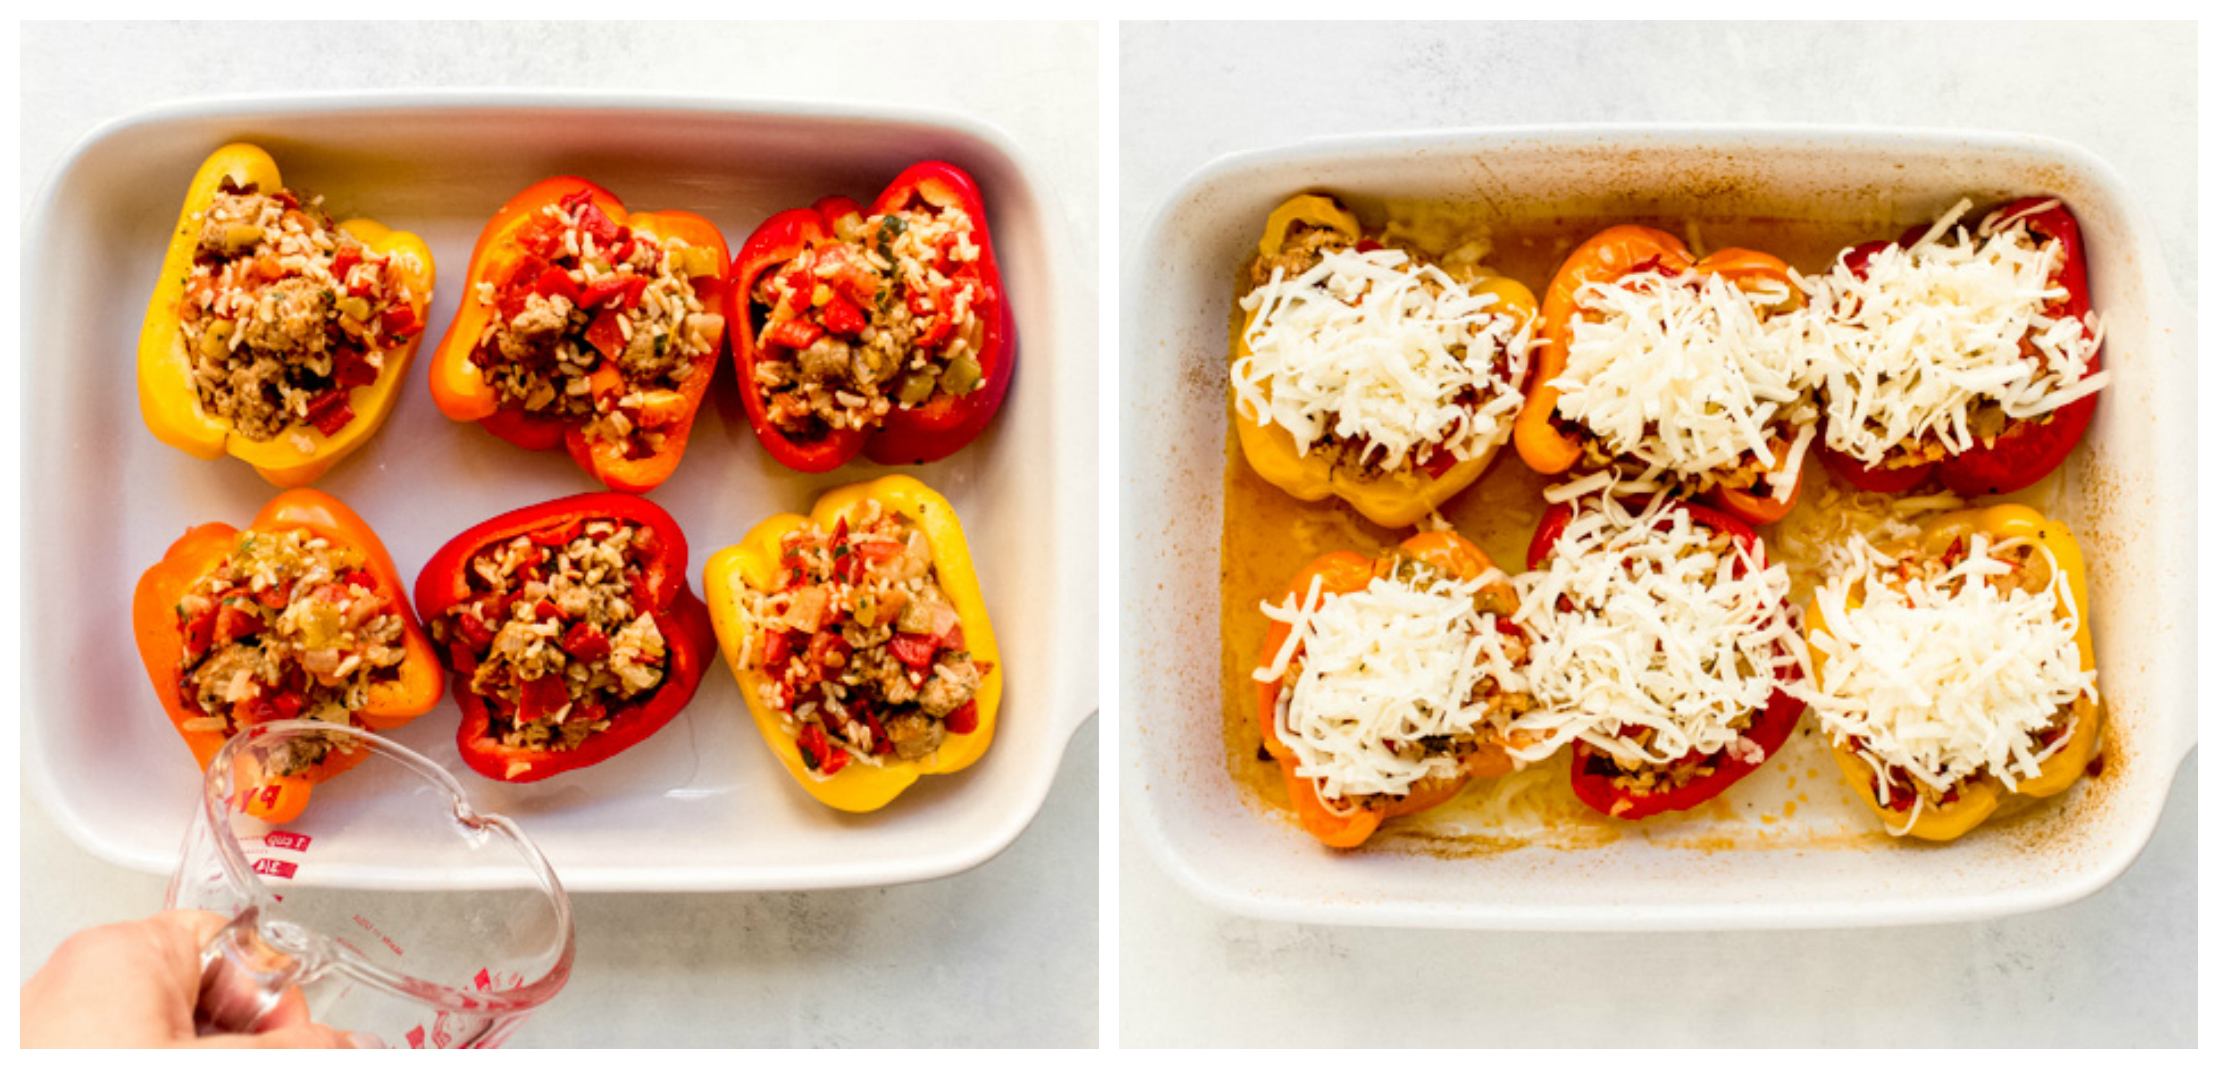 baked stuffed peppers in a dish